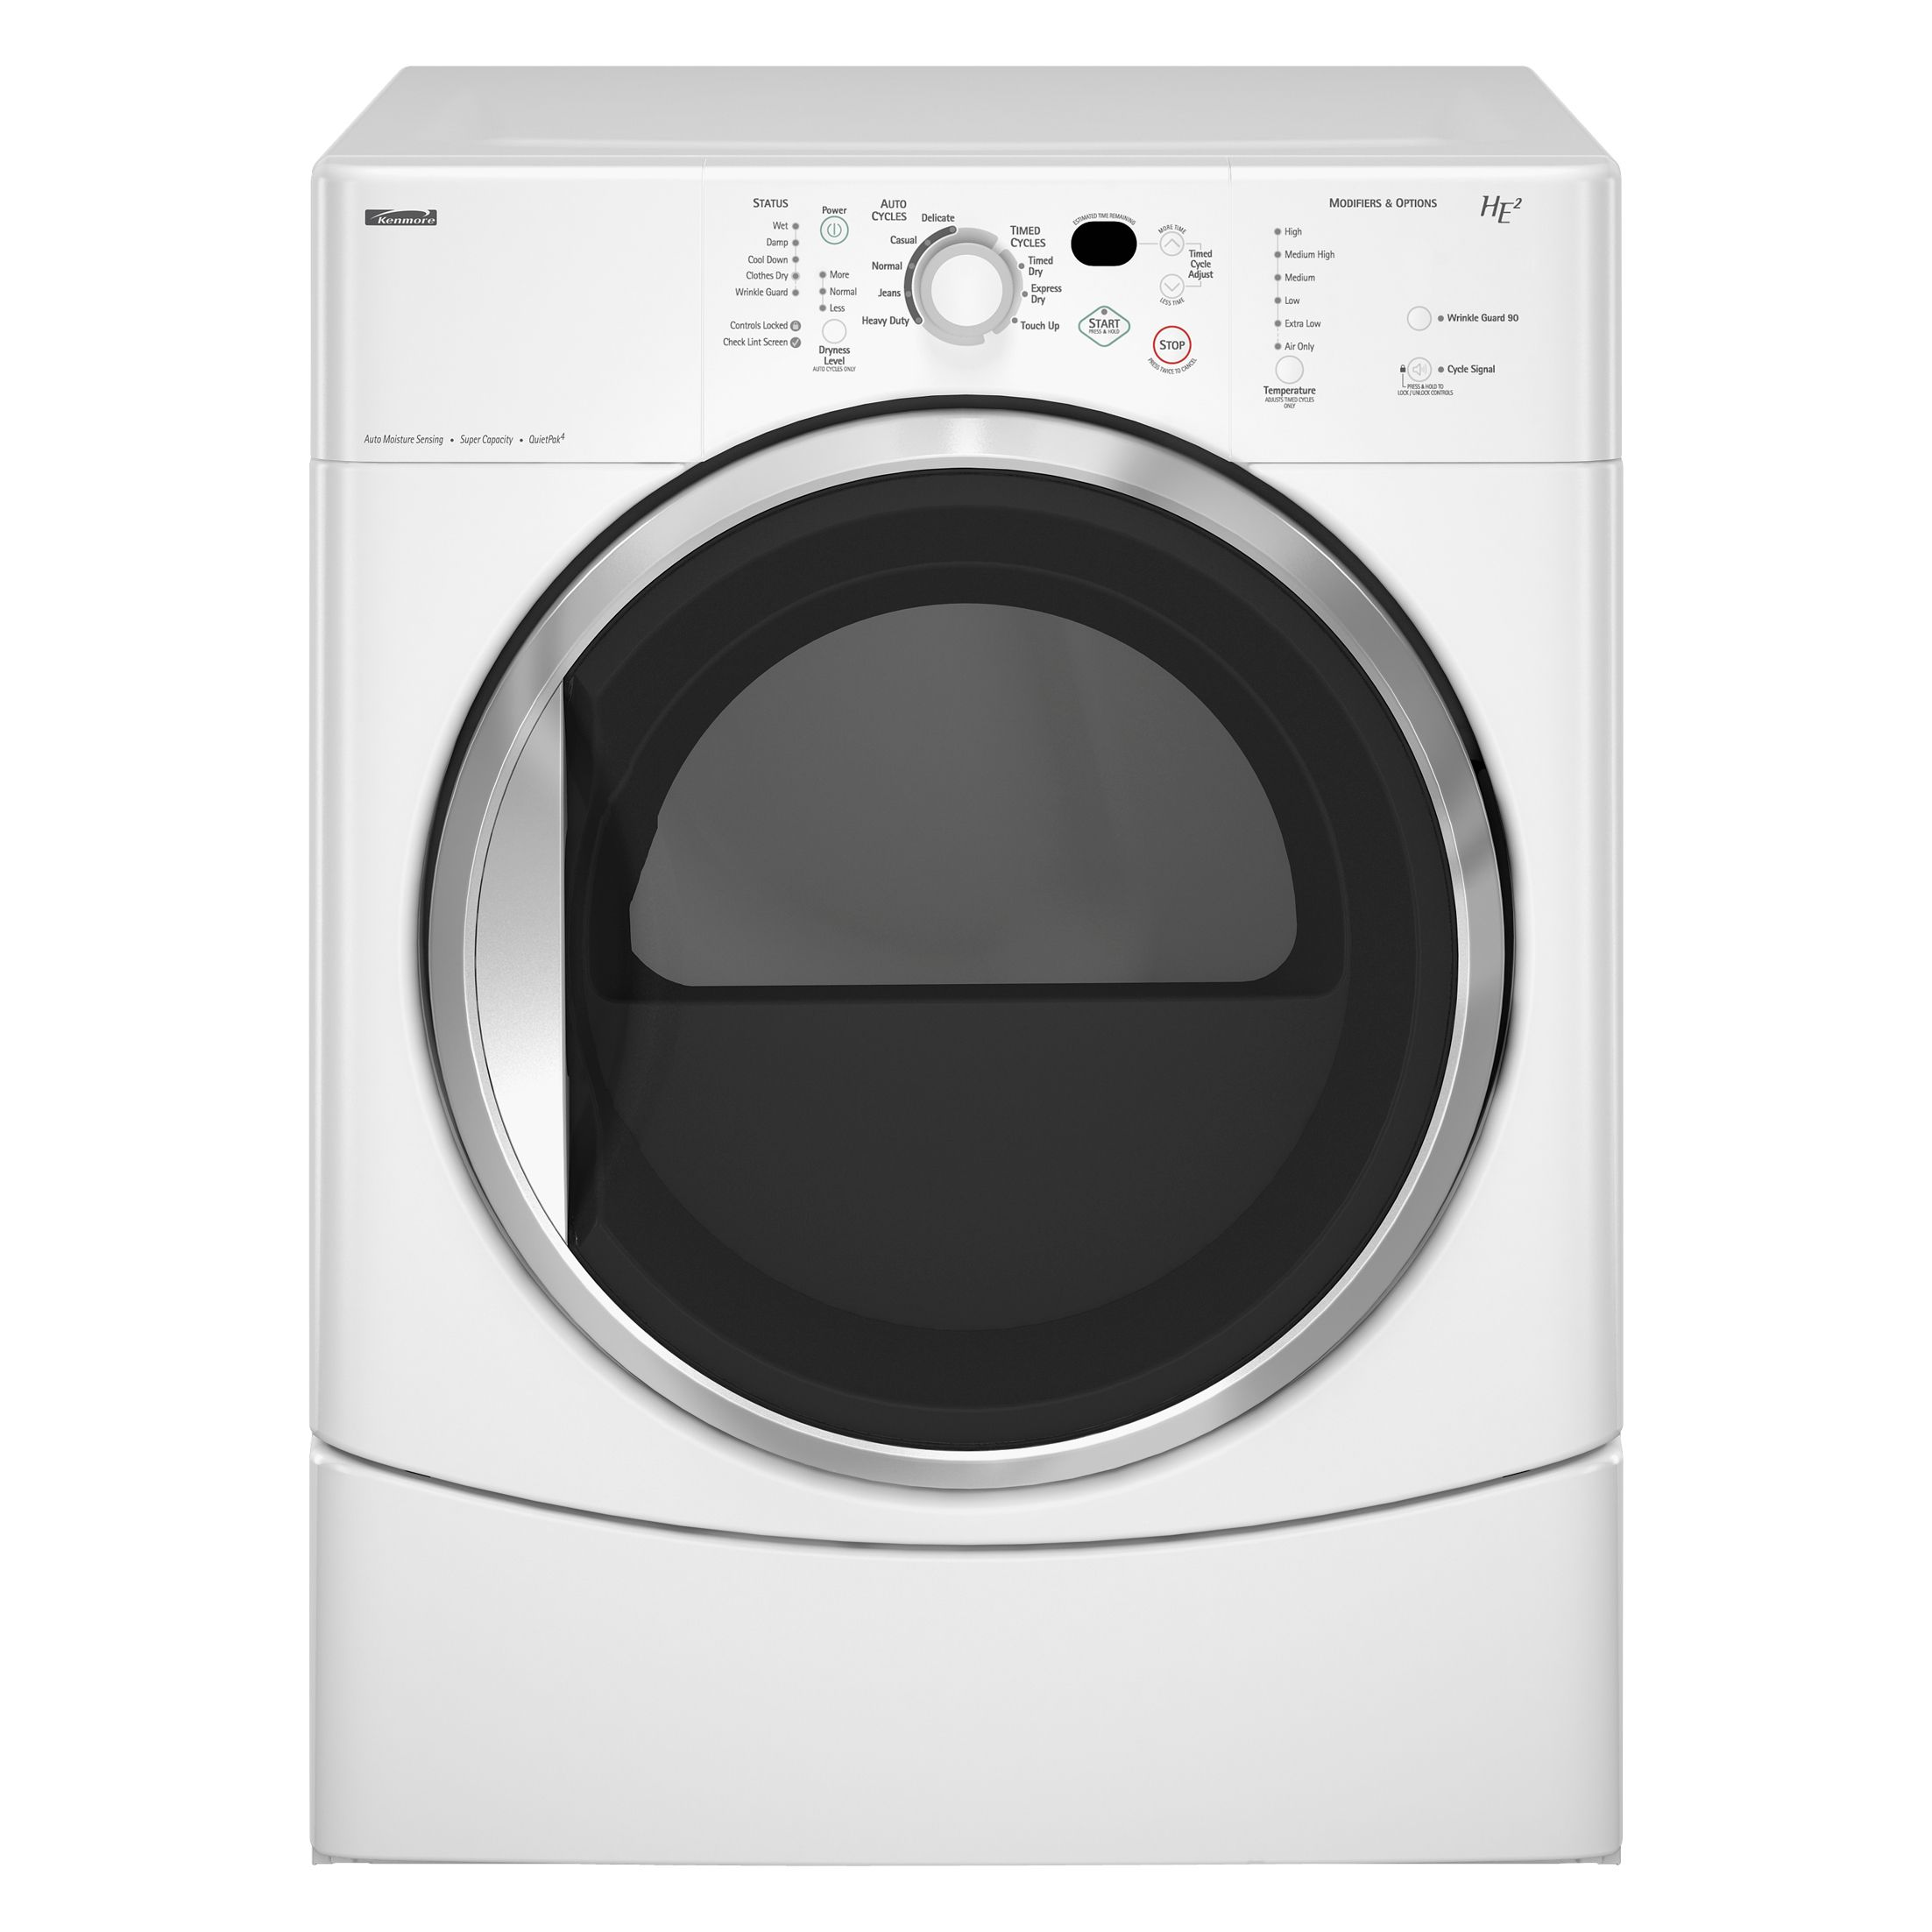 Kenmore Washer Service Manual